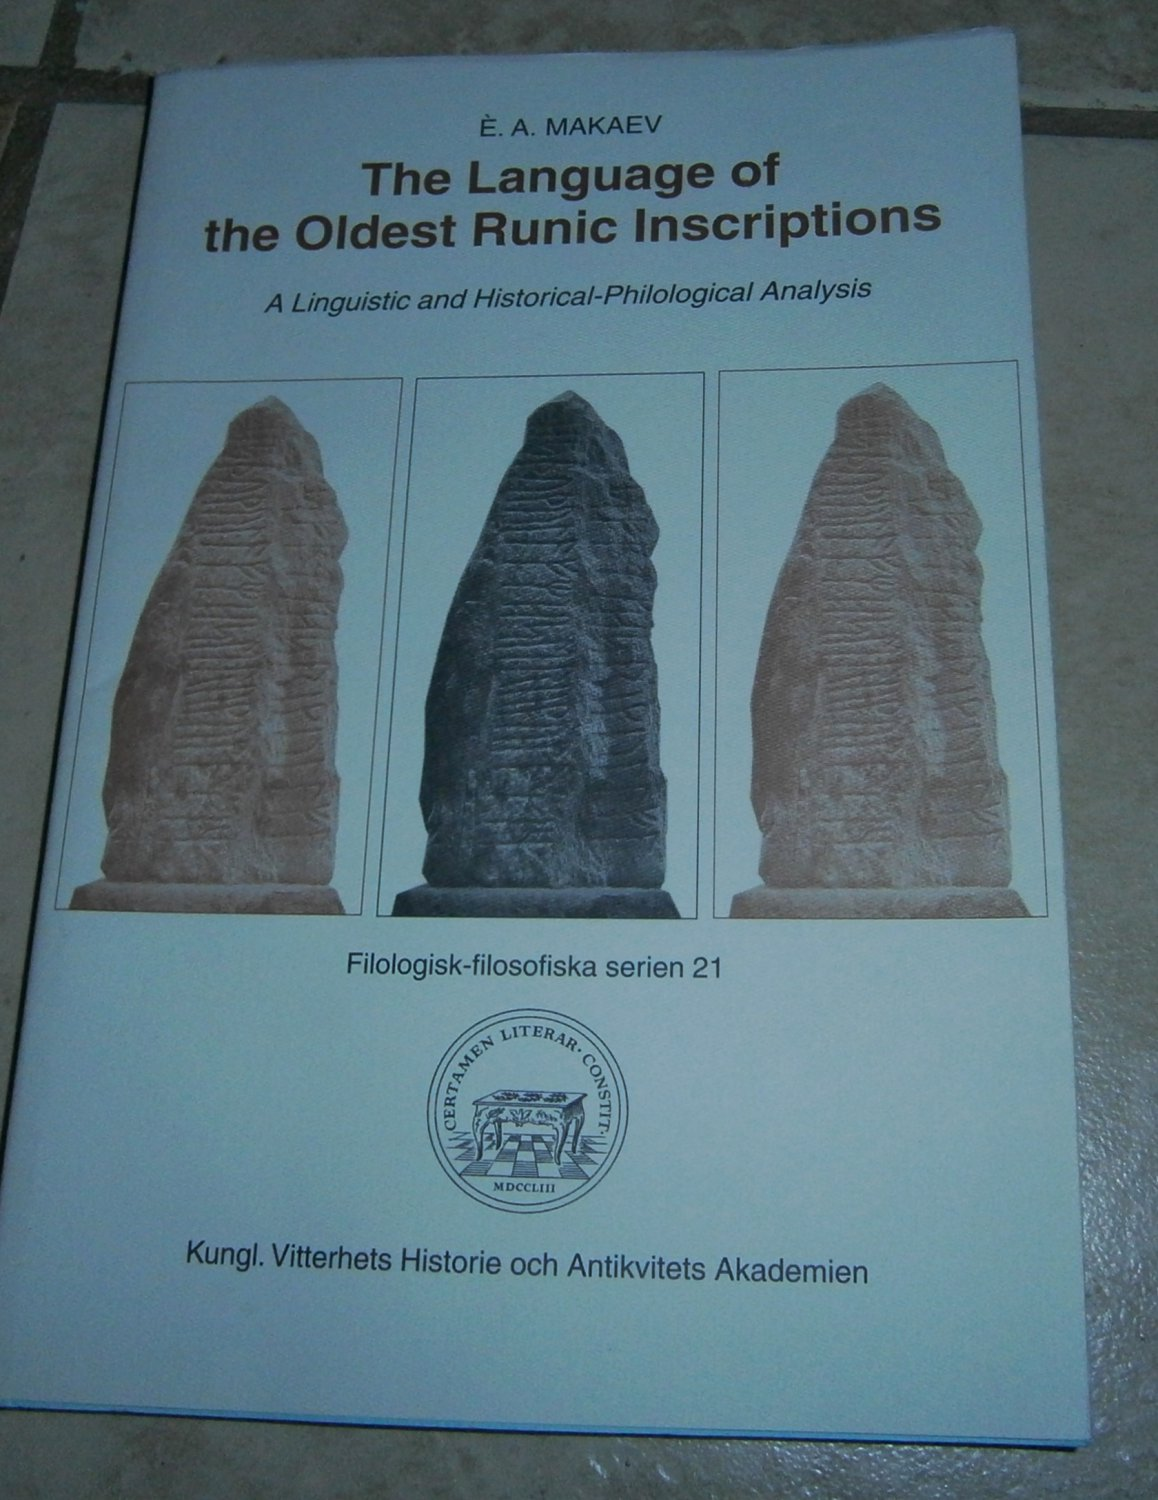 The Language of the Oldest Runic Inscriptions  E.A. Makaev